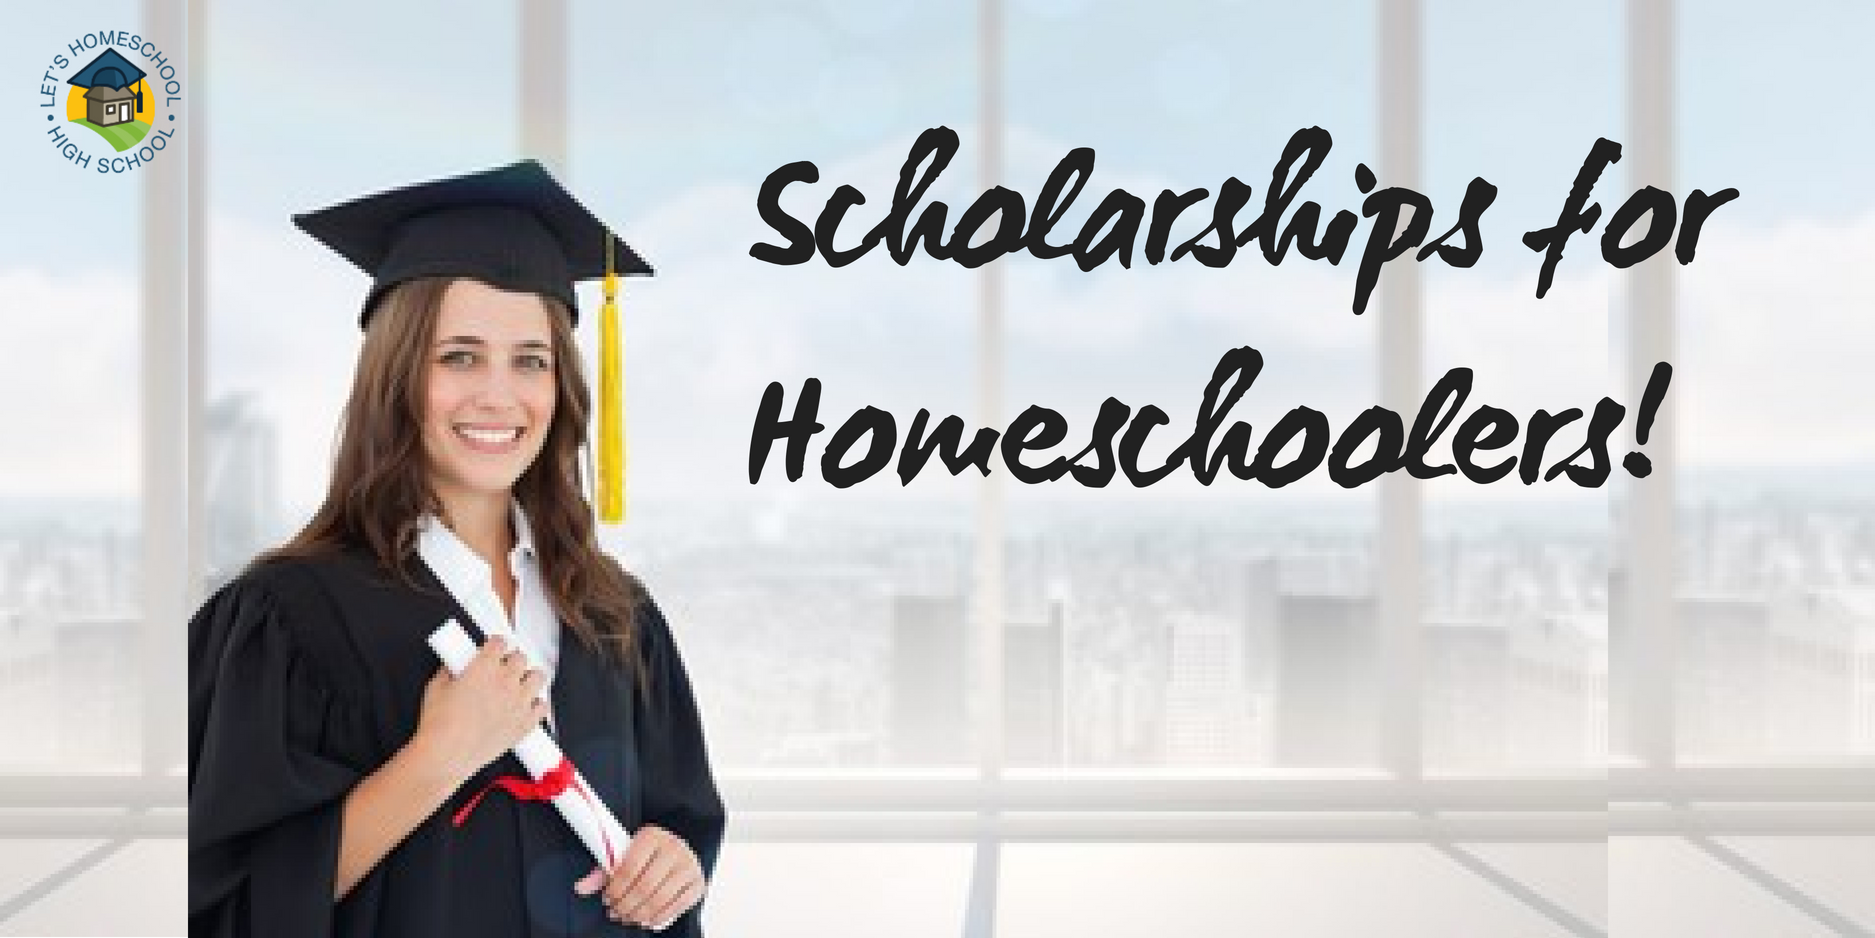 Looking for scholarships?